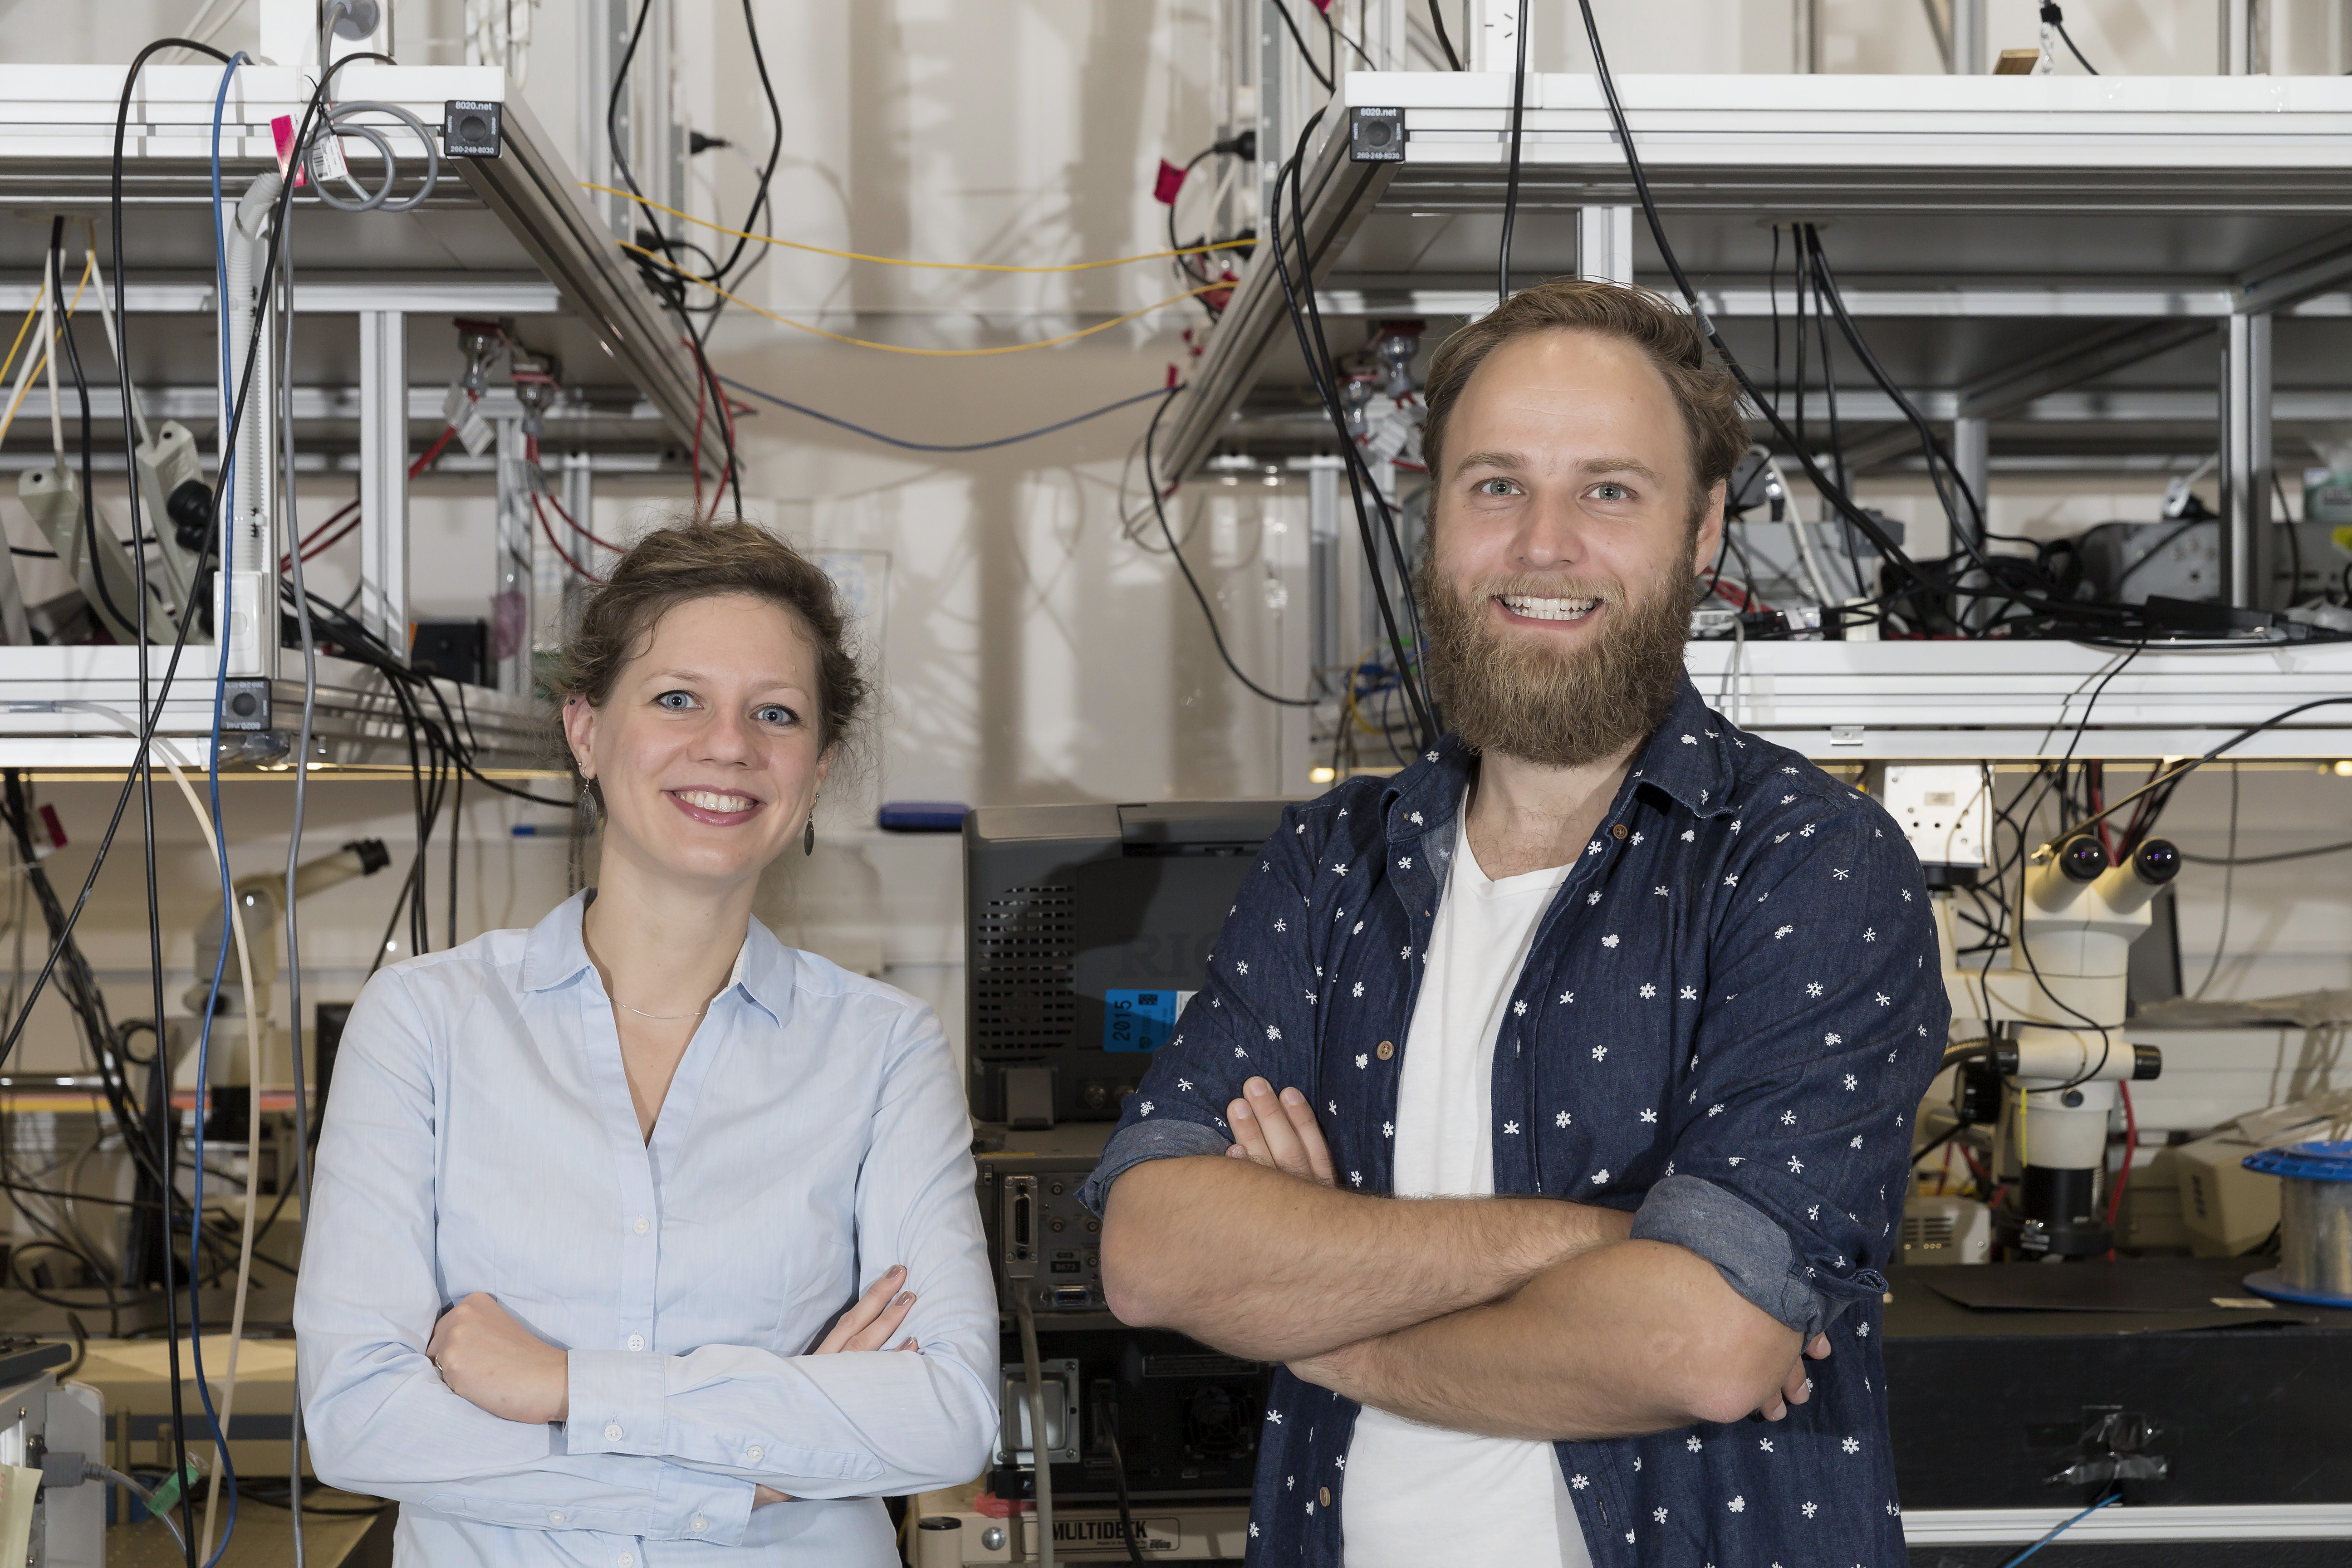 Dr Birgit Stiller (left) and Moritz Merklein at the Sydney Nanoscience Hub. Photo: Louise Cooper